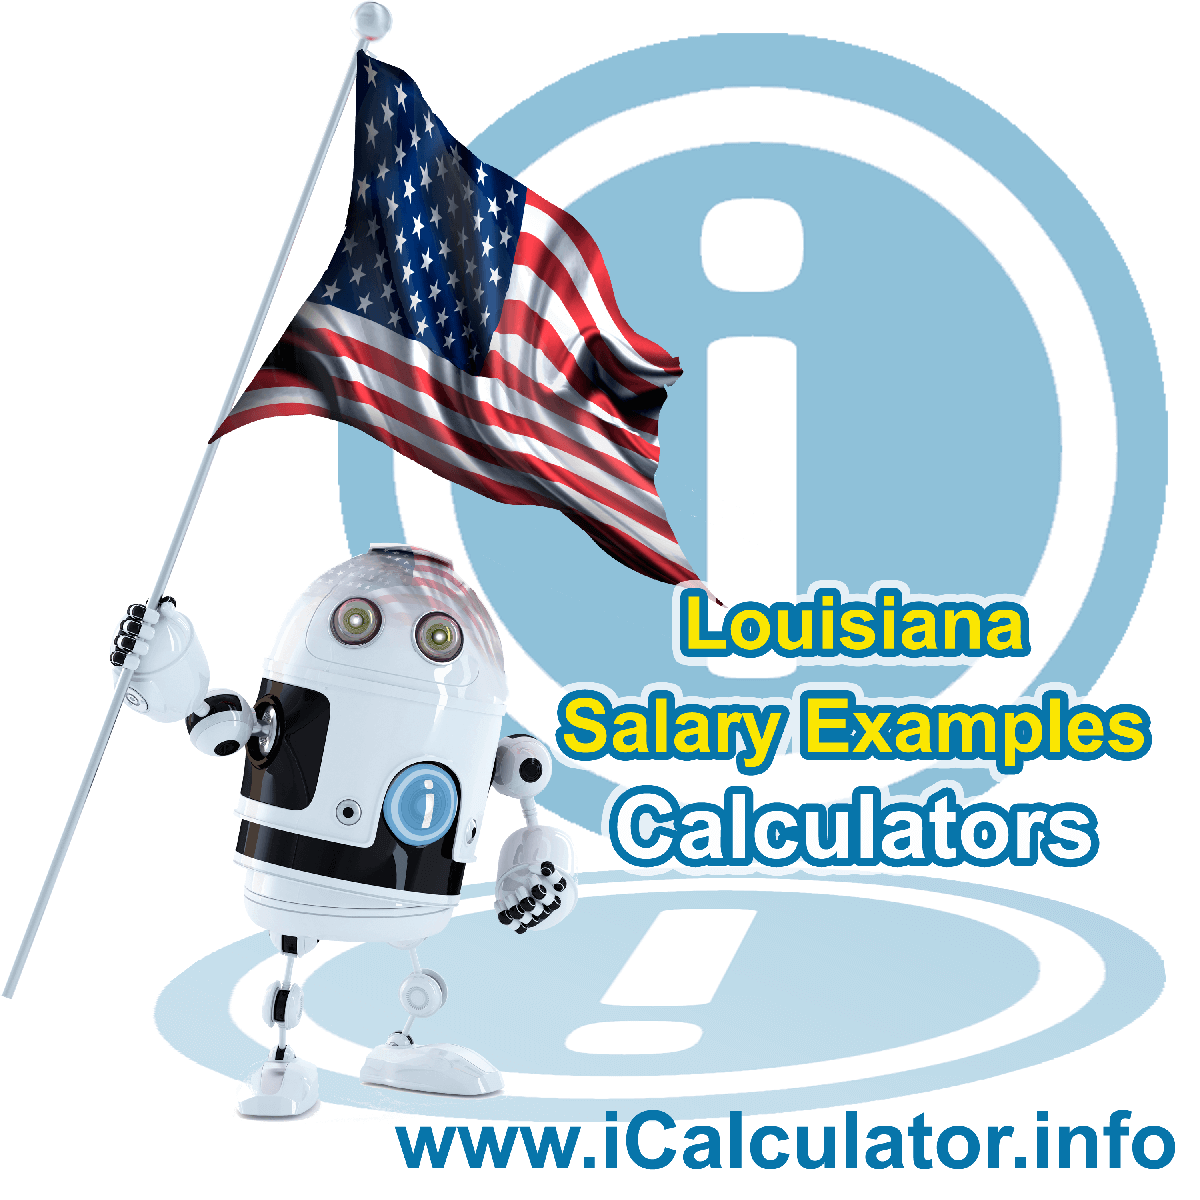 Louisiana Salary Example for $150.00 in 2020 | iCalculator | $150.00 salary example for employee and employer paying Louisiana State tincome taxes. Detailed salary after tax calculation including Louisiana State Tax, Federal State Tax, Medicare Deductions, Social Security, Capital Gains and other income tax and salary deductions complete with supporting Louisiana state tax tables